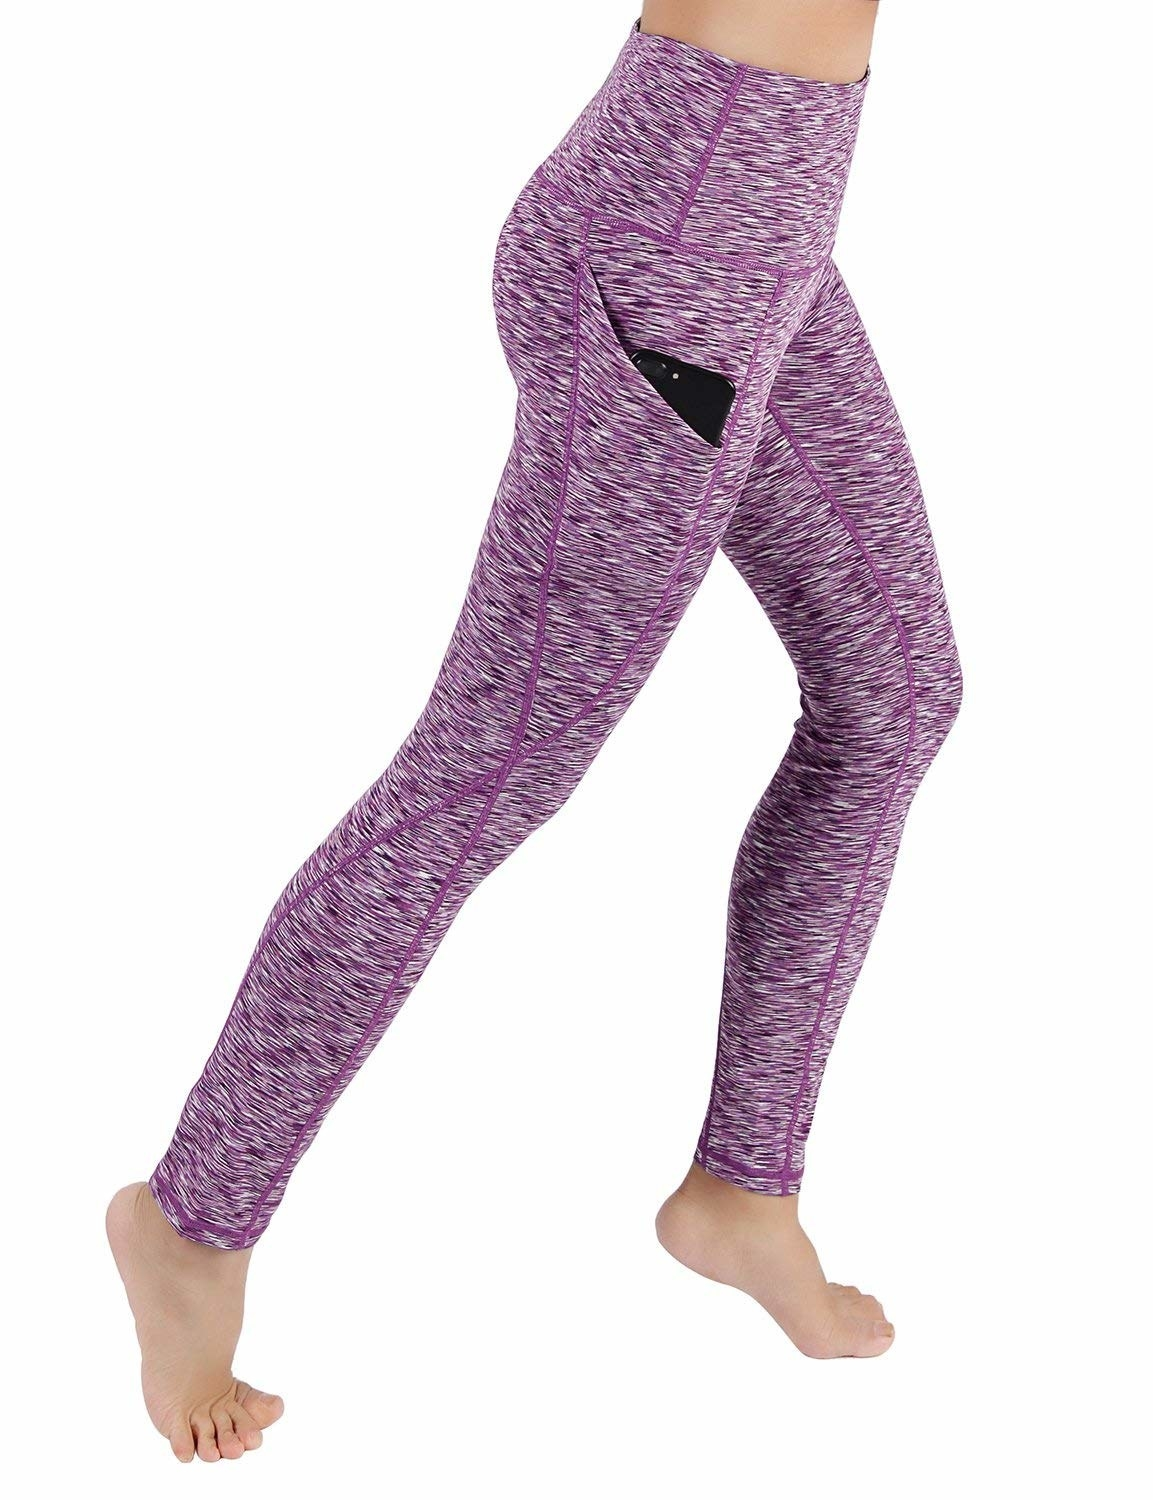 8ad515b1bb So when I saw the raving reviews about these Ododos high-waisted leggings  ($15.08+ on Amazon) in a whopping ~37 colors~, I knew there must be  something ...